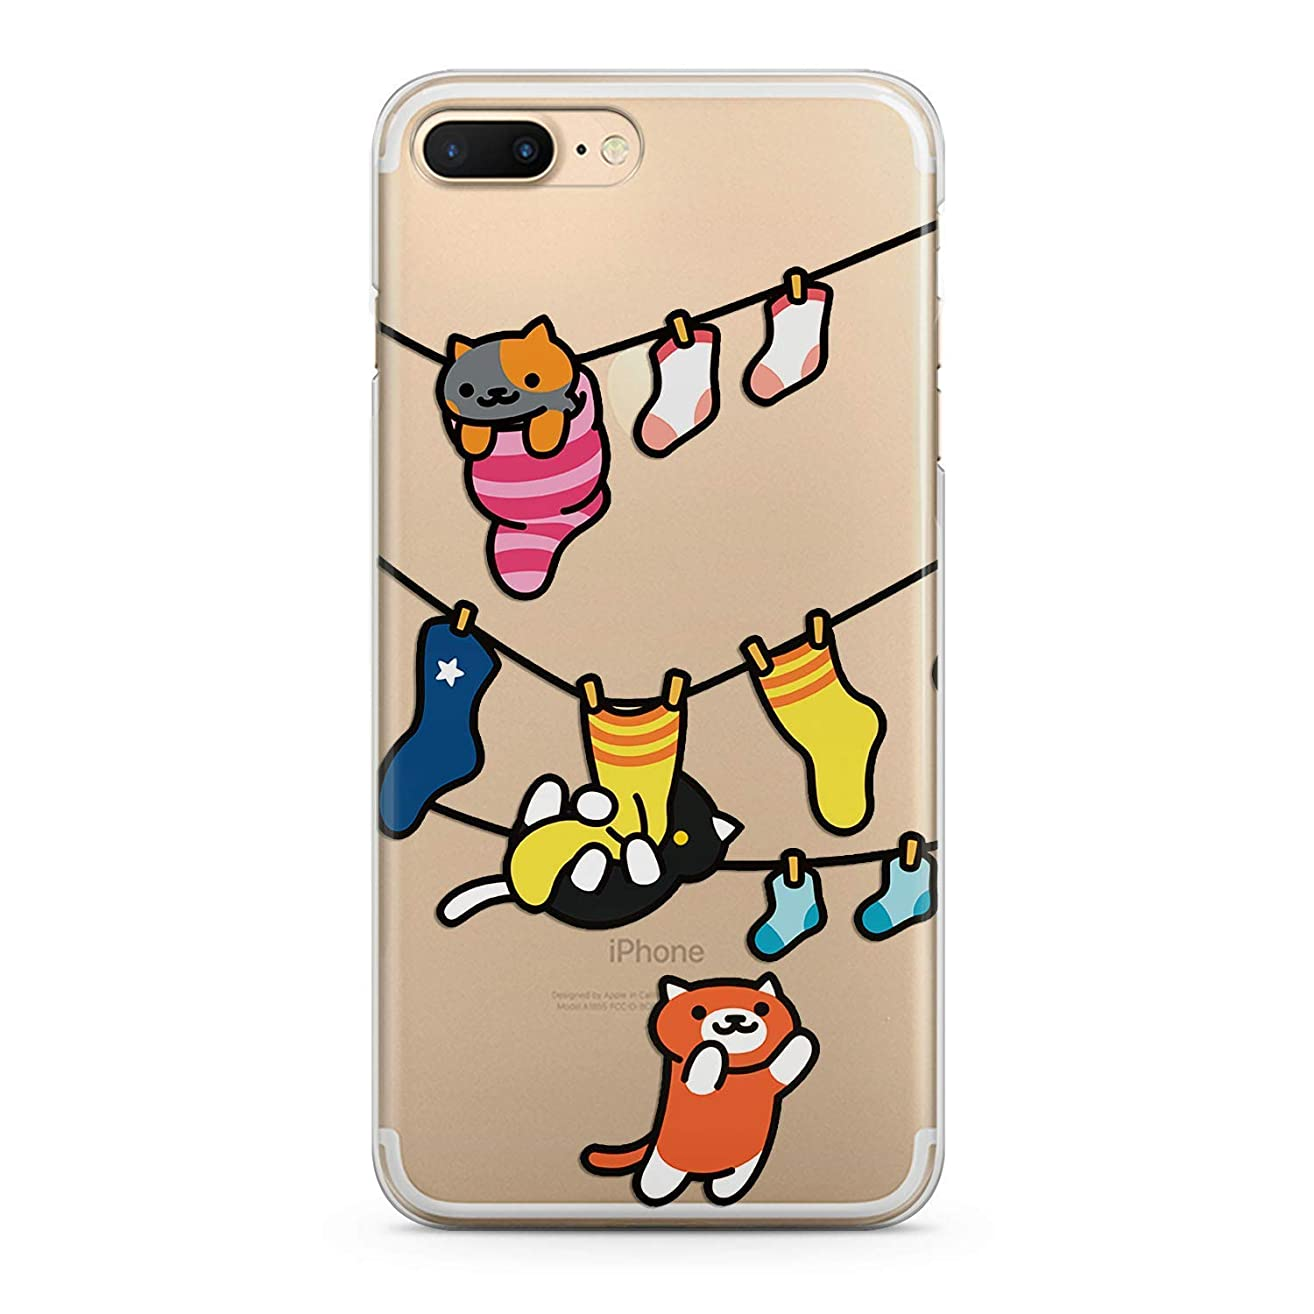 Lex Altern TPU Case for iPhone Apple Xs Max Xr 10 X 8+ 7 6s 6 SE 5s 5 Girl Clear Colored Kitties Design Print Teen Animal Theme Gift Yellow Lightweight Cover Cats Flexible Slim fit Smooth Soft Funny